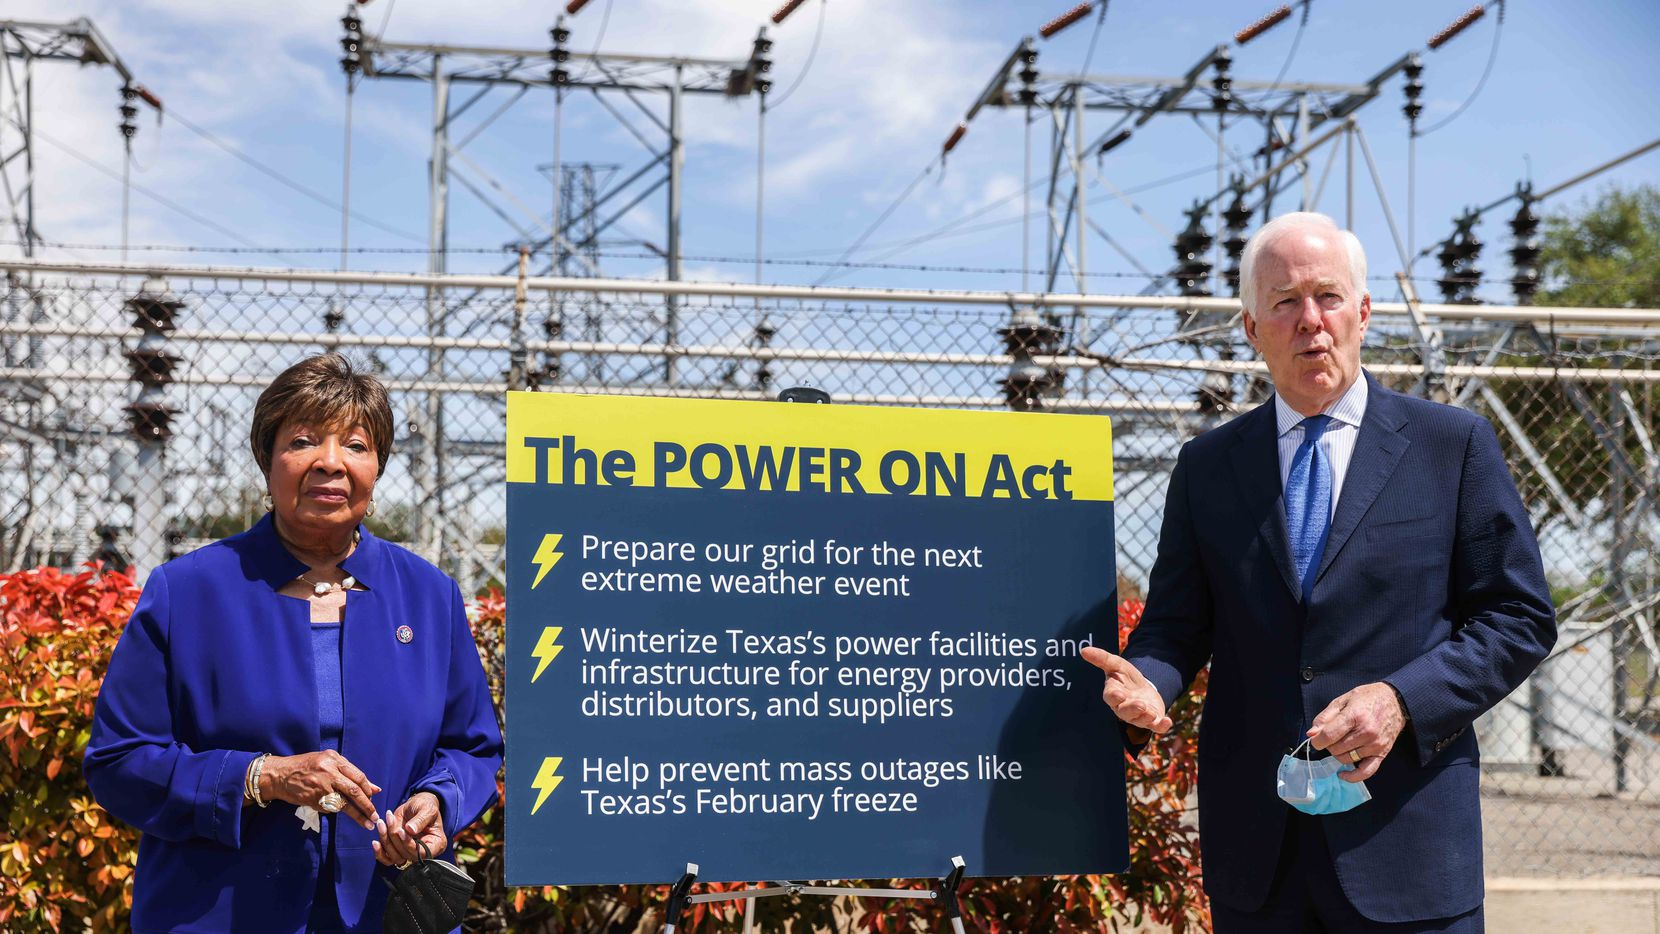 Senator John Cornyn (R-TX) joins U.S. Representative Eddie Bernice Johnson (TX-30) during a press conference outside an electrical substation to announce their bipartisan legislation to help weatherize Texas's energy grid in Dallas on Thursday, April8, 2021. The POWER ON Act aims to prevent a future severe storm, like the one Texas saw in February, from crippling our electrical grid and leaving countless Texans without electricity for days on end.  It will assist Texas power providers, distributors, and suppliers with funding to winterize their facilities and infrastructure to prepare for future extreme weather events.